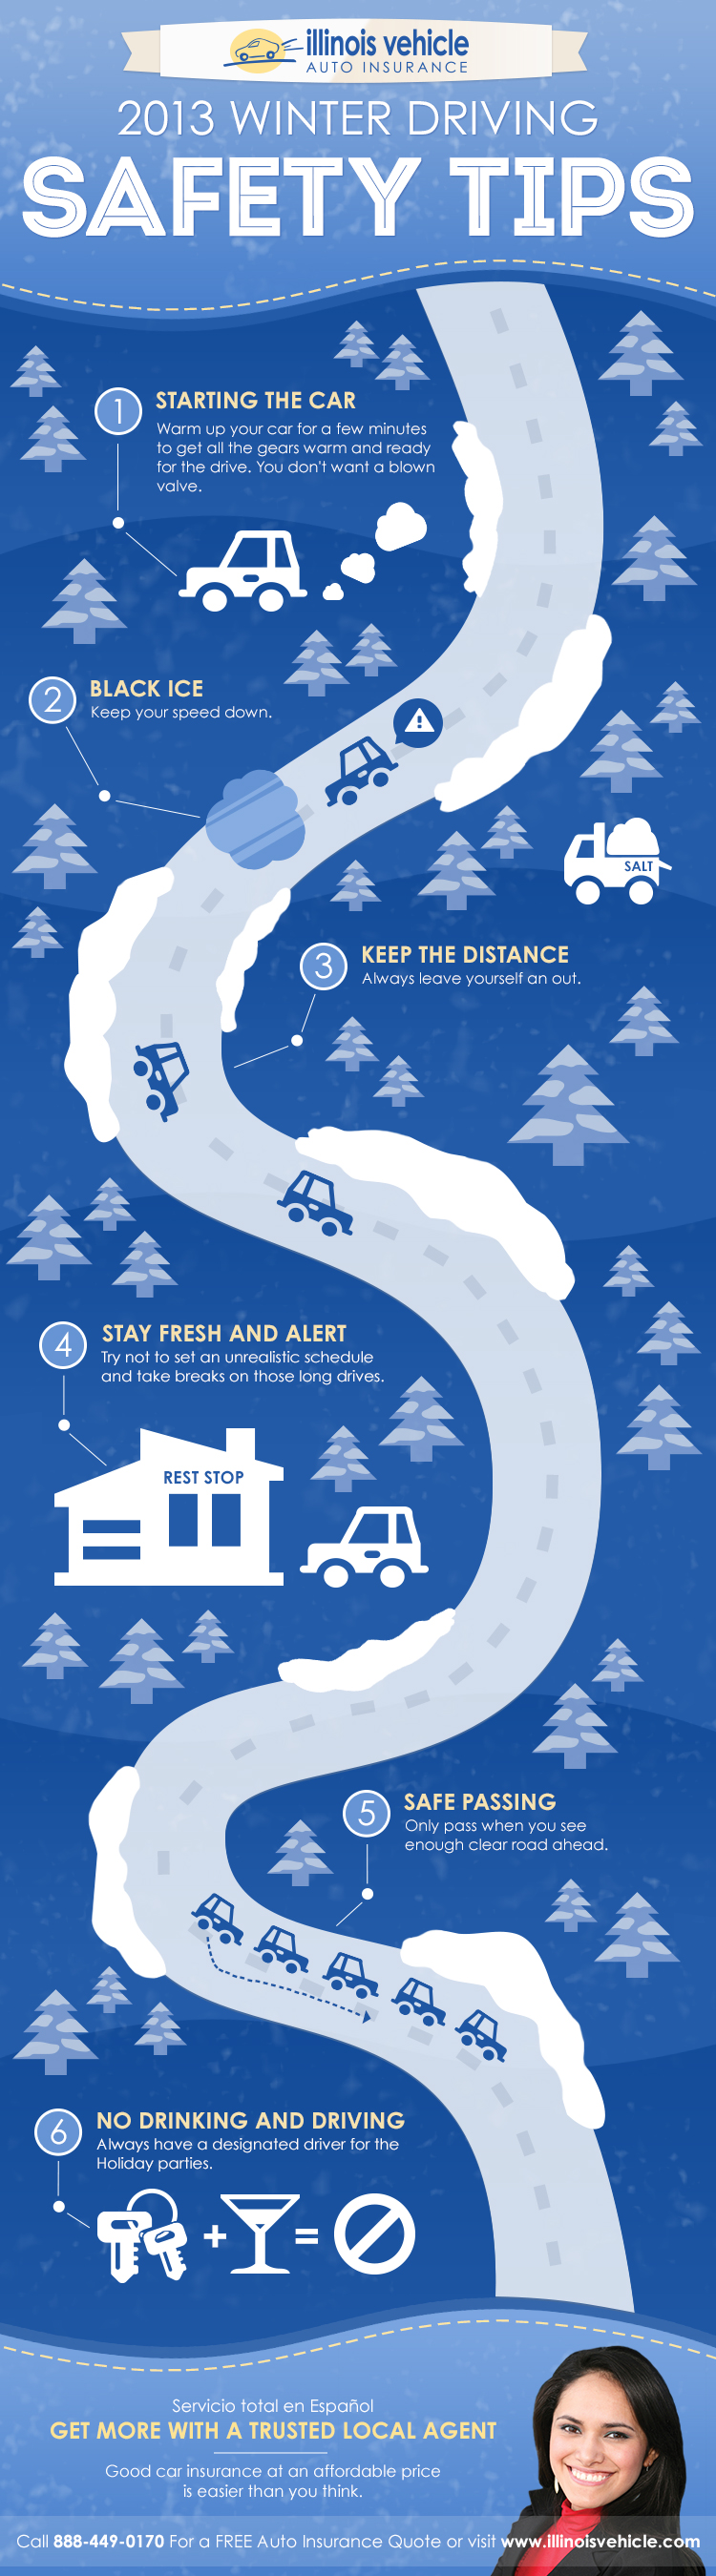 Illinois Vehicle 2013 Winter Driving Safety Tips